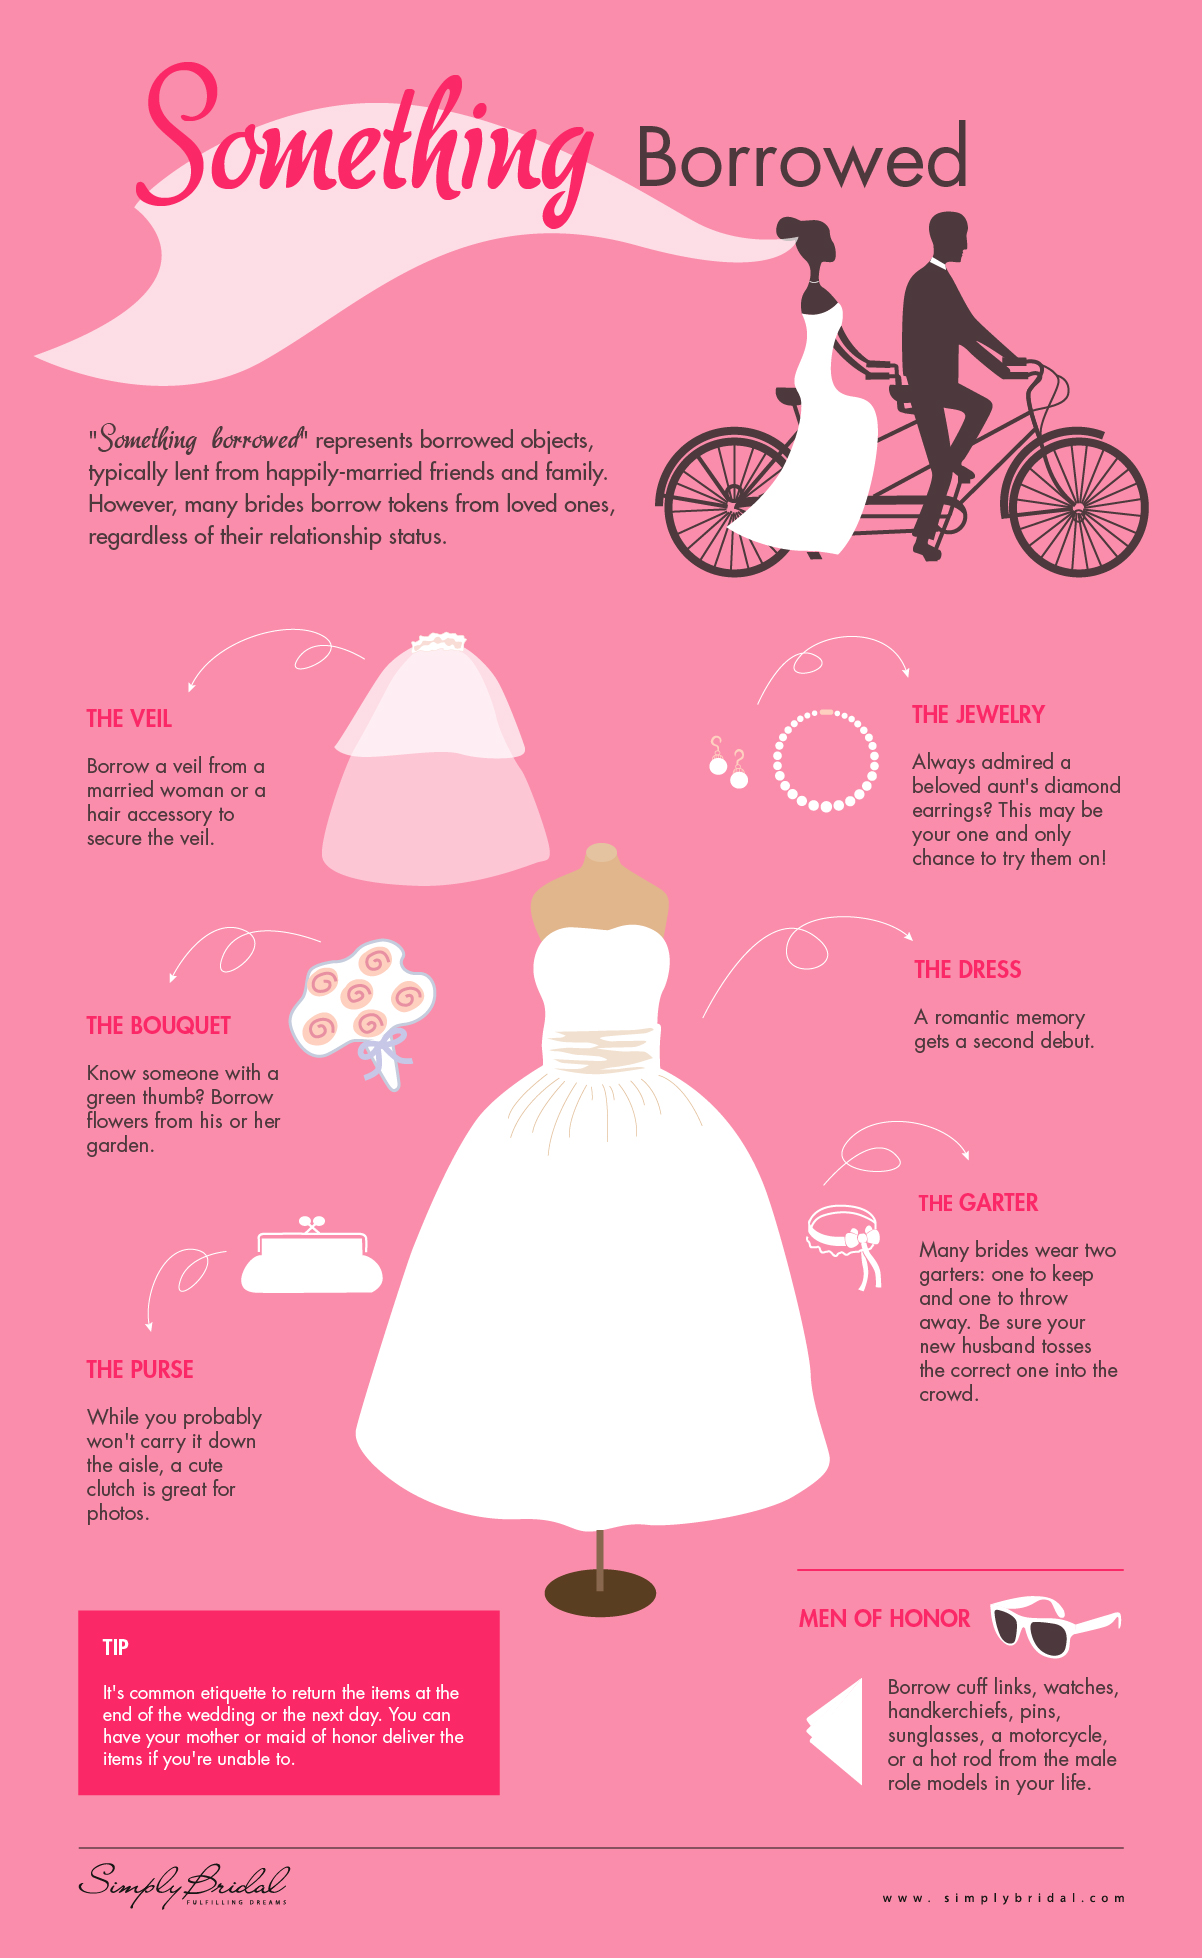 Something Borrowed Ideas for the Bride